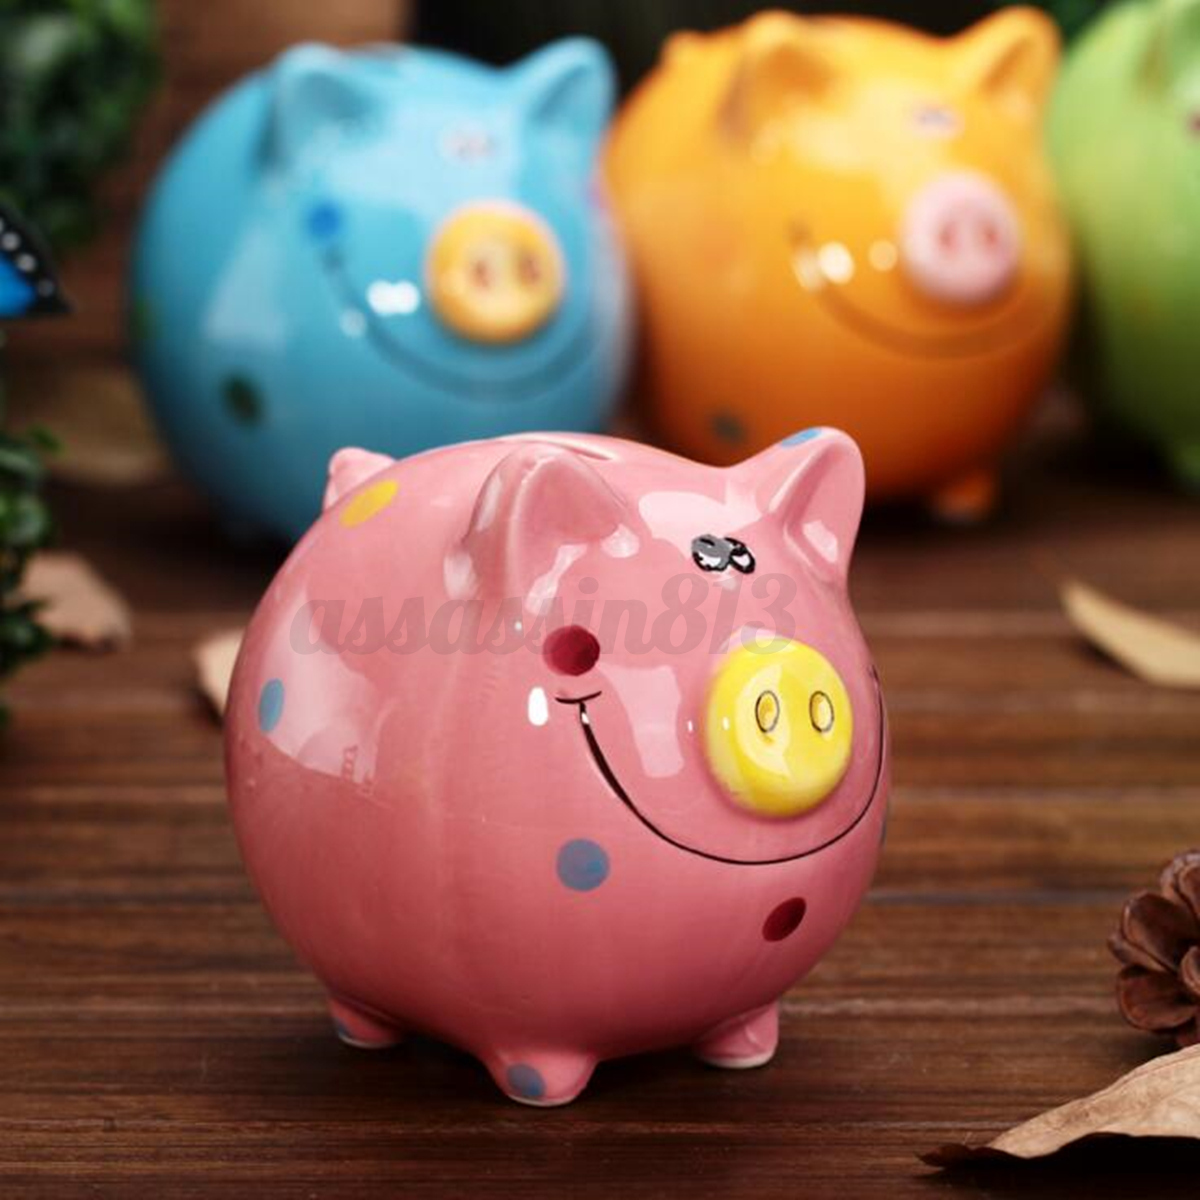 Coin Piggy Bank Toy 12cm Ceramic Piggy Bank Coin Money Cash Collectible Saving